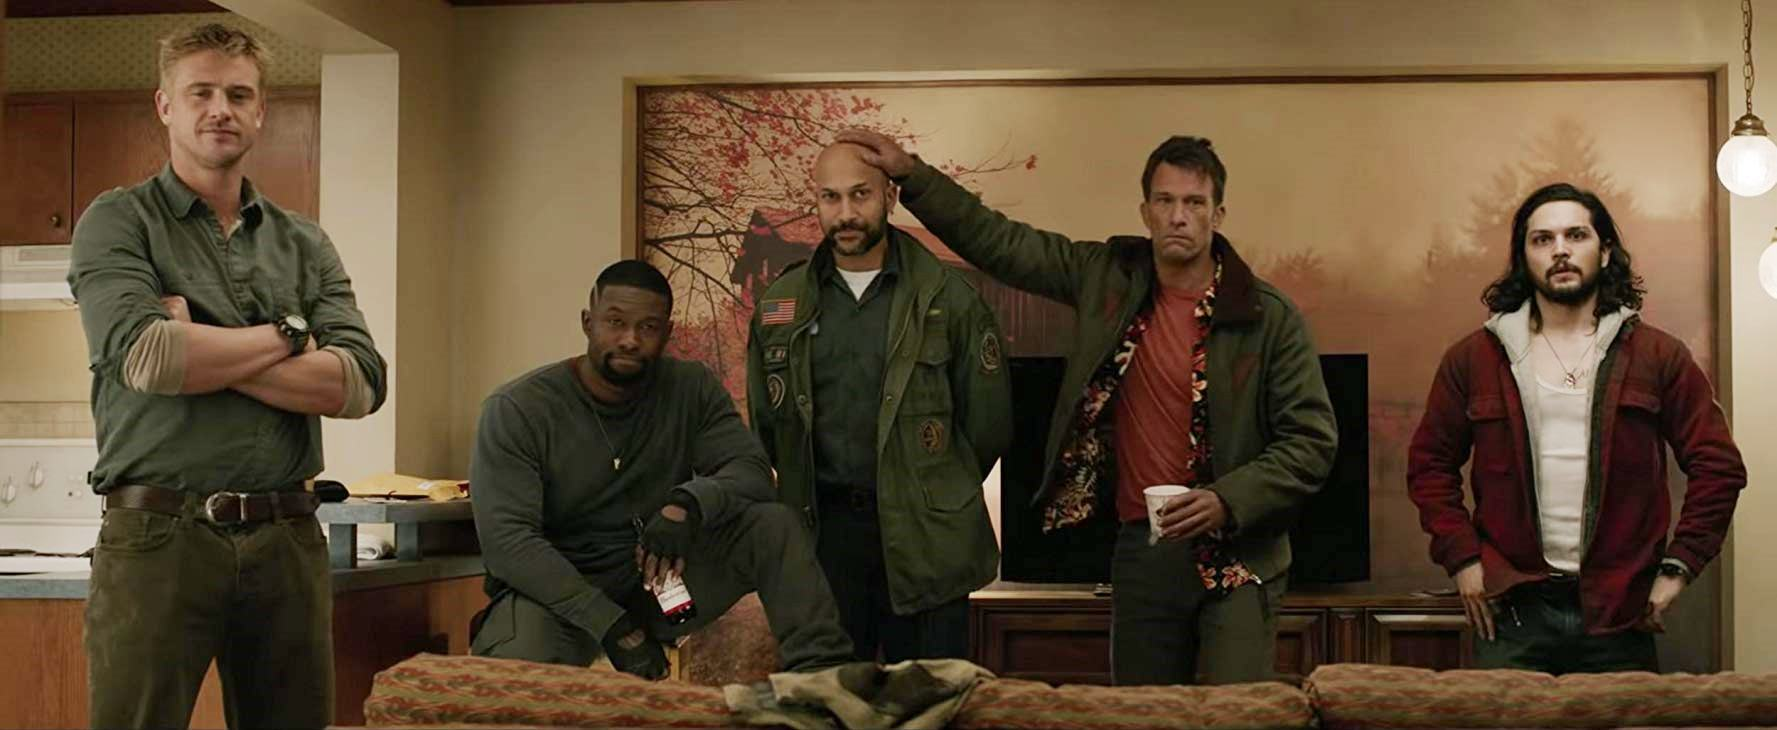 Boyd Holdbrook and his team of misfits Trevante Rhodes, Keegan-Michael Key, Thomas Jane, Augusto Aguilera in The Predator (2018)